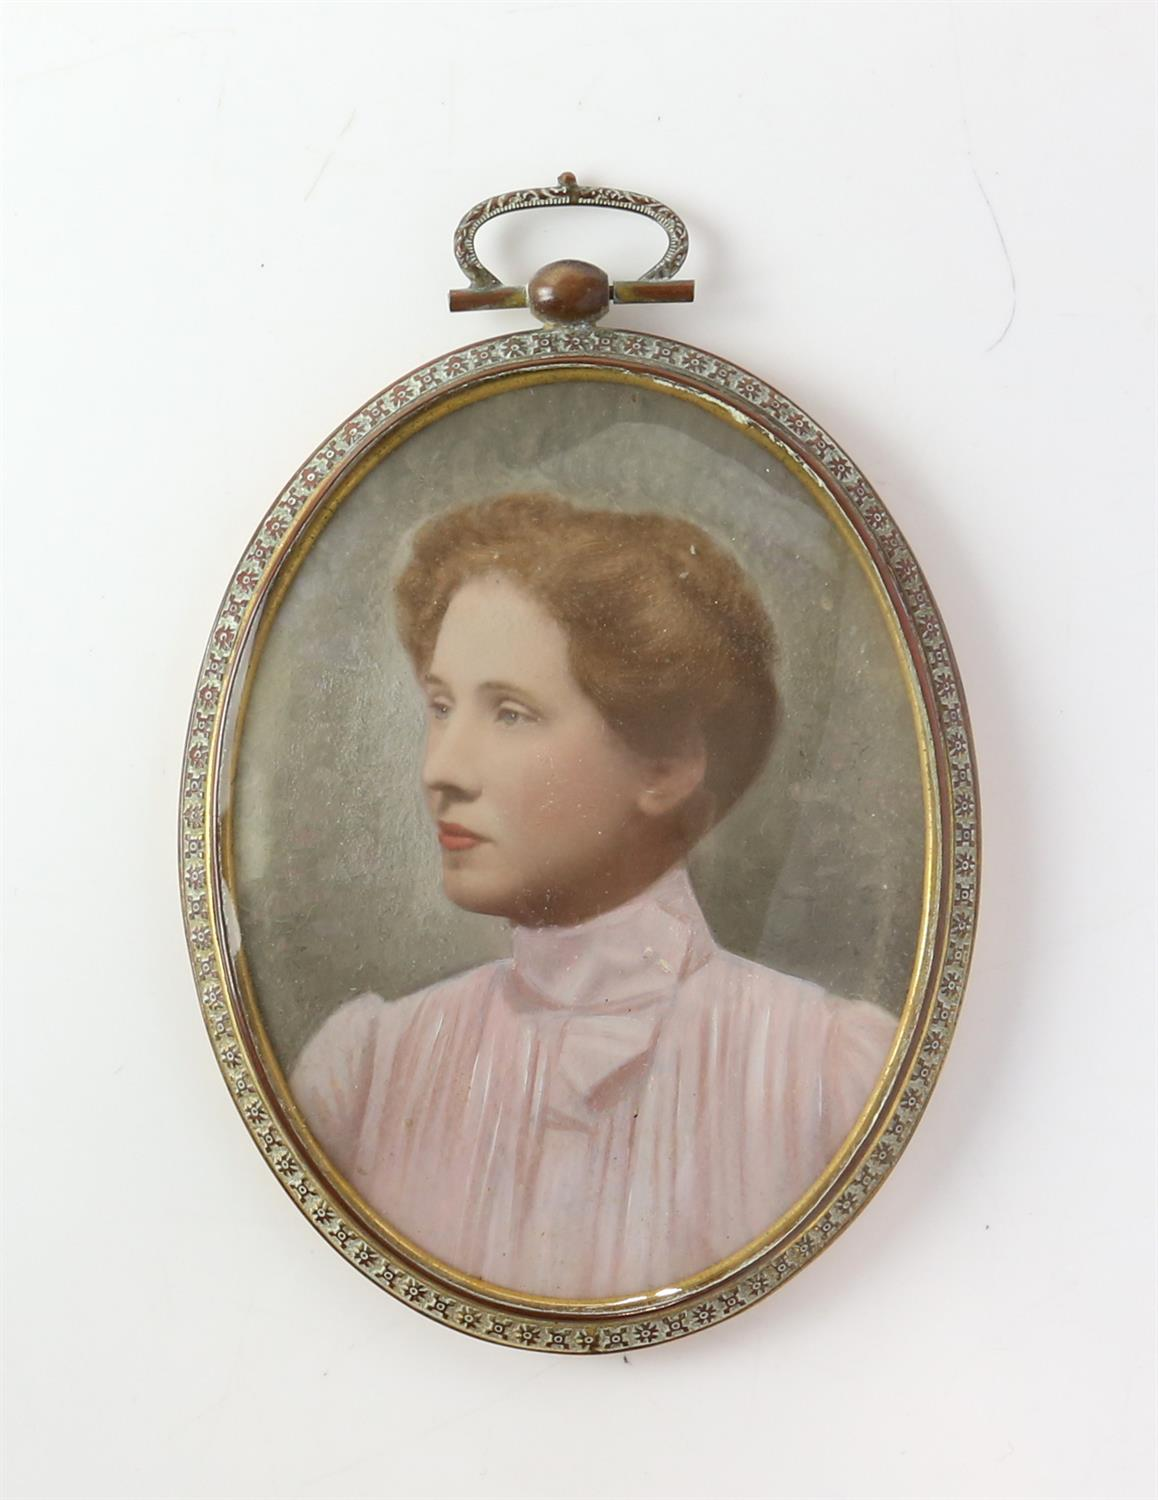 Early 20th century portrait miniature of a lady in a high-collared blouse with her hair up, - Image 2 of 3